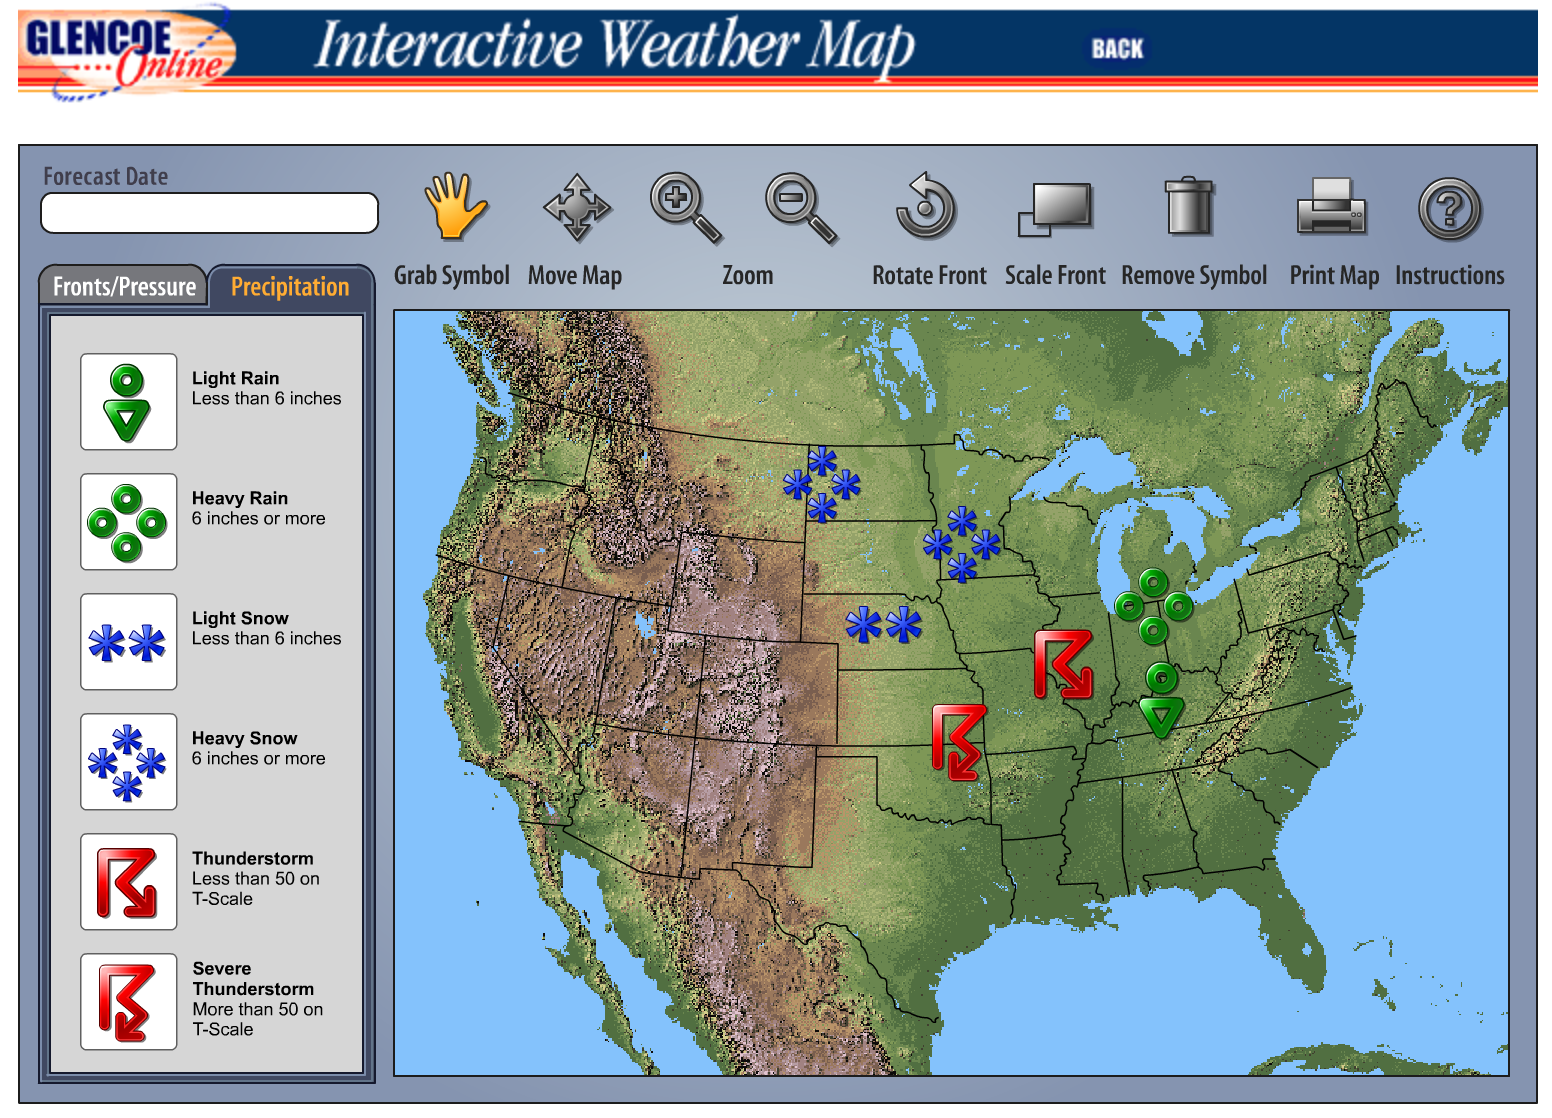 Interactive Weather Map | The Techie Teacher® on minnesota dnr lake maps, games maps, 2d maps, united kingdom maps, topographic maps, classic maps, schiphol airport parking maps, asia maps, all maps, motion maps, presentation maps, world of warships maps, virtual maps, fun maps, educational maps, google maps, dot right of way maps, vermont town boundary maps,